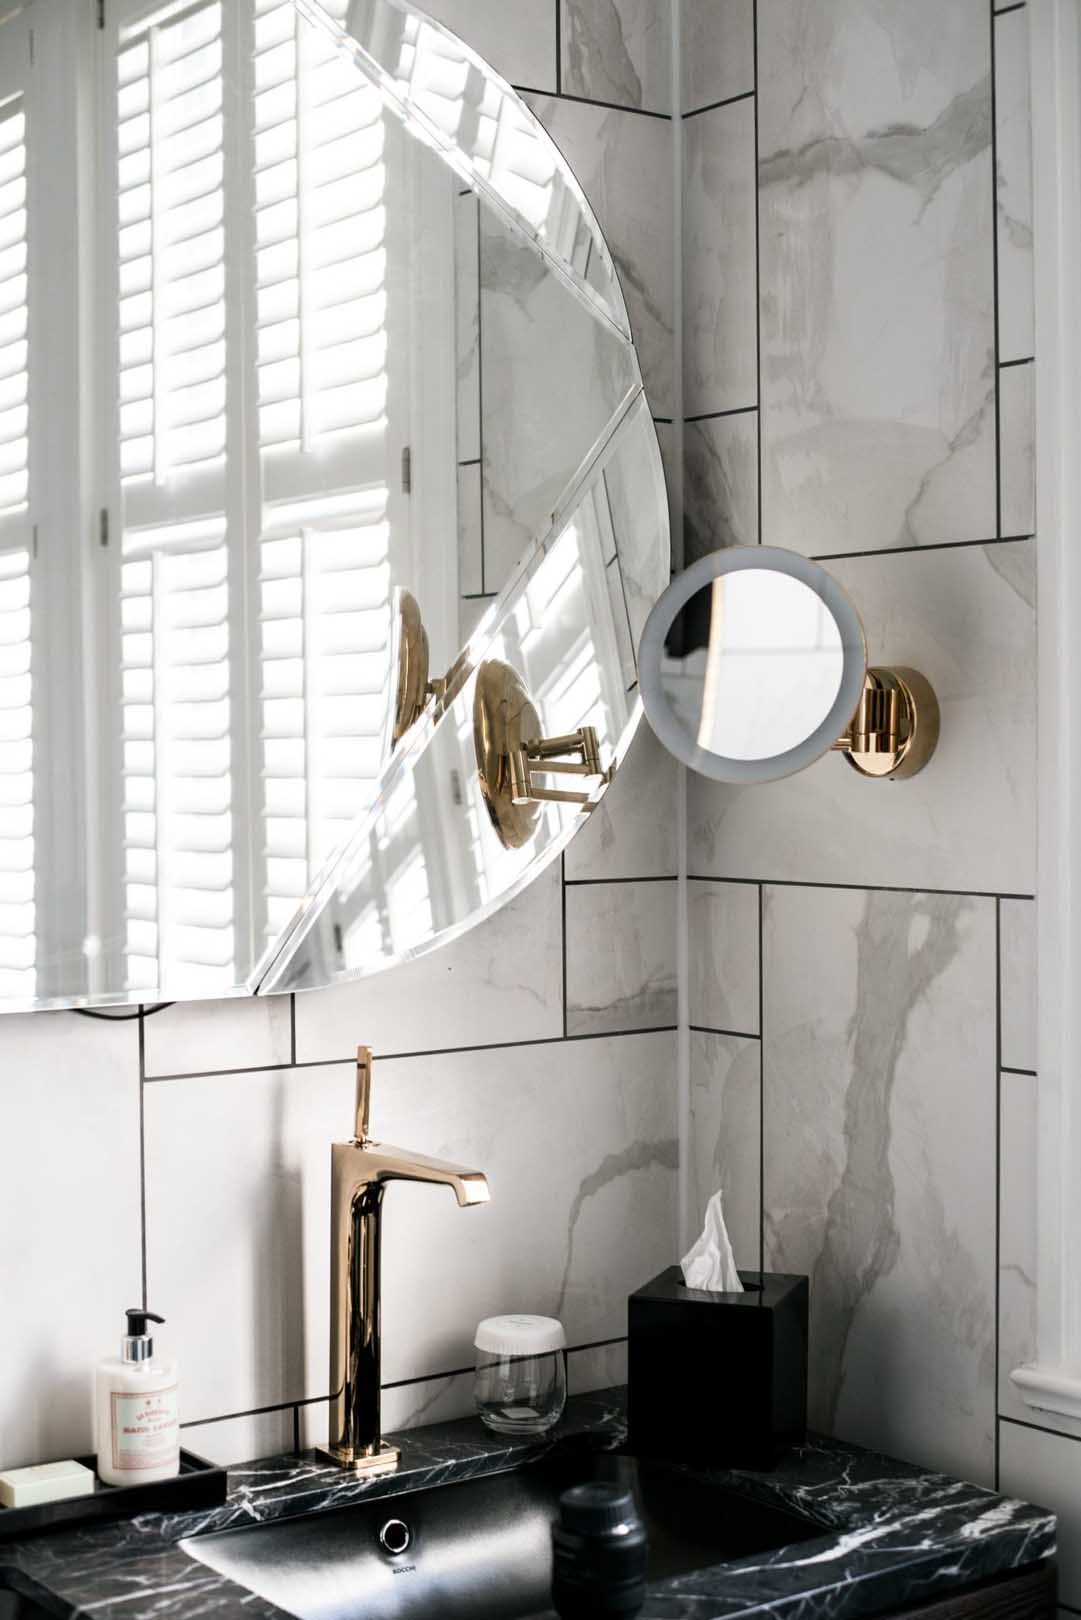 Image of the bathroom sink with brass taps and a circular mirror on the wall